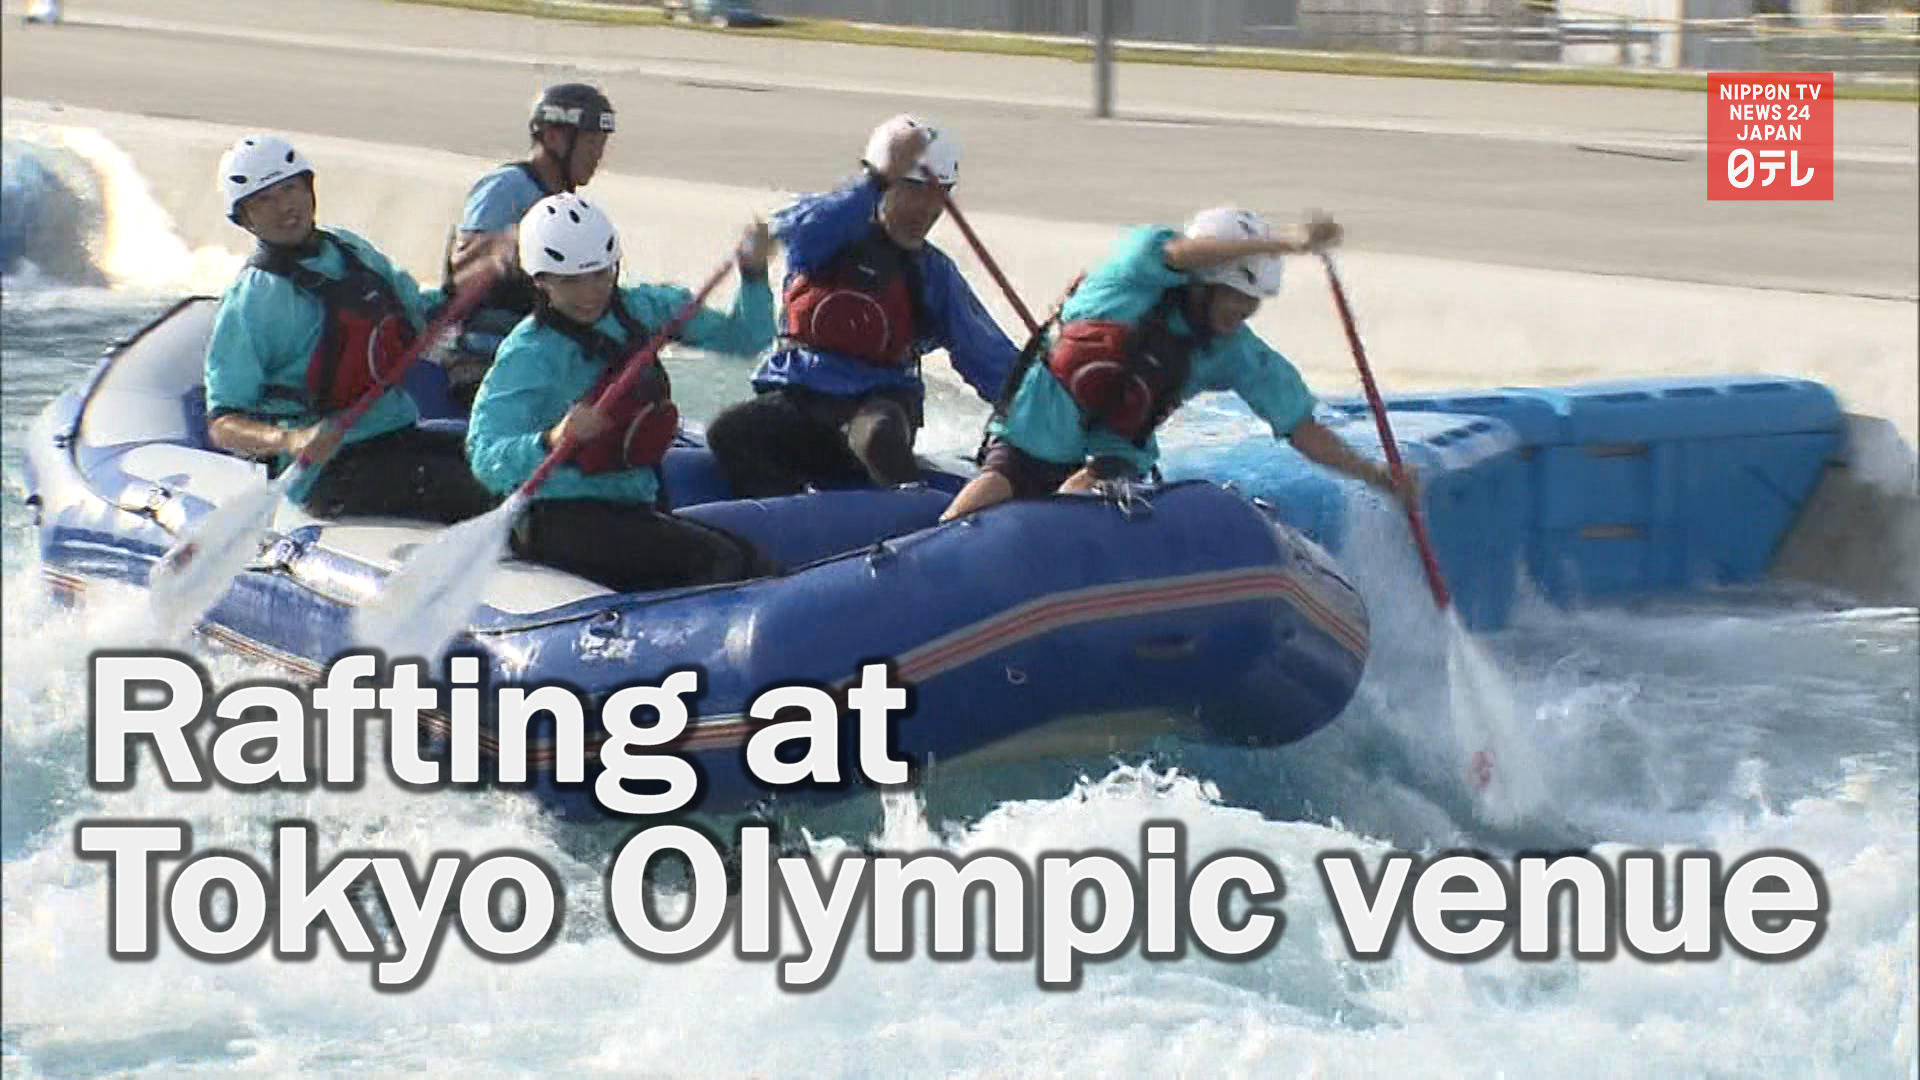 Tokyo Olympic canoe venue opens for public use